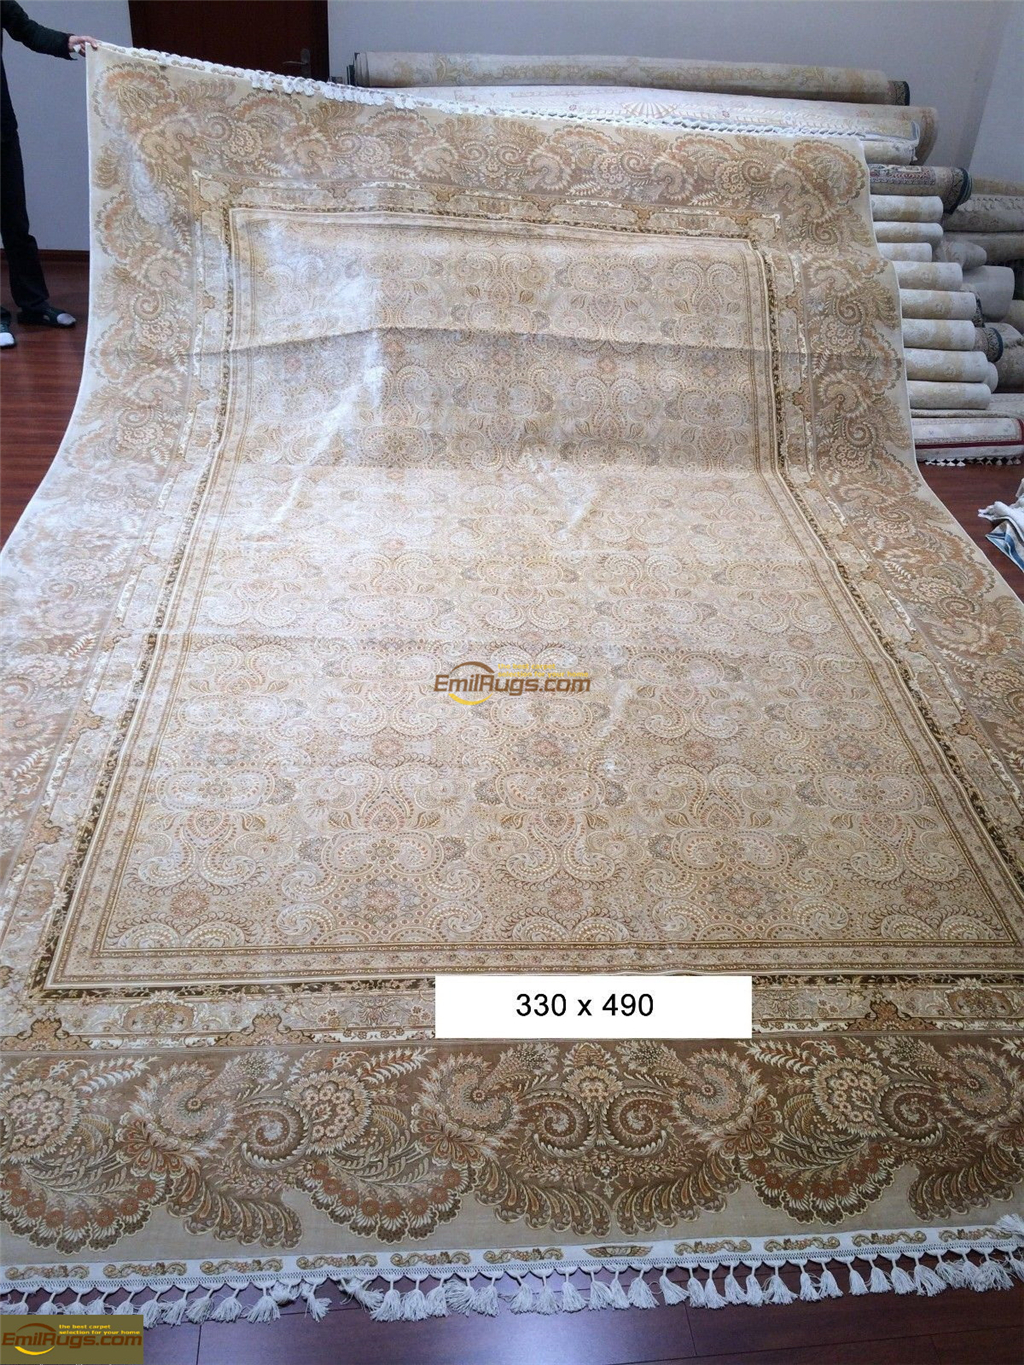 silk rugs large size2